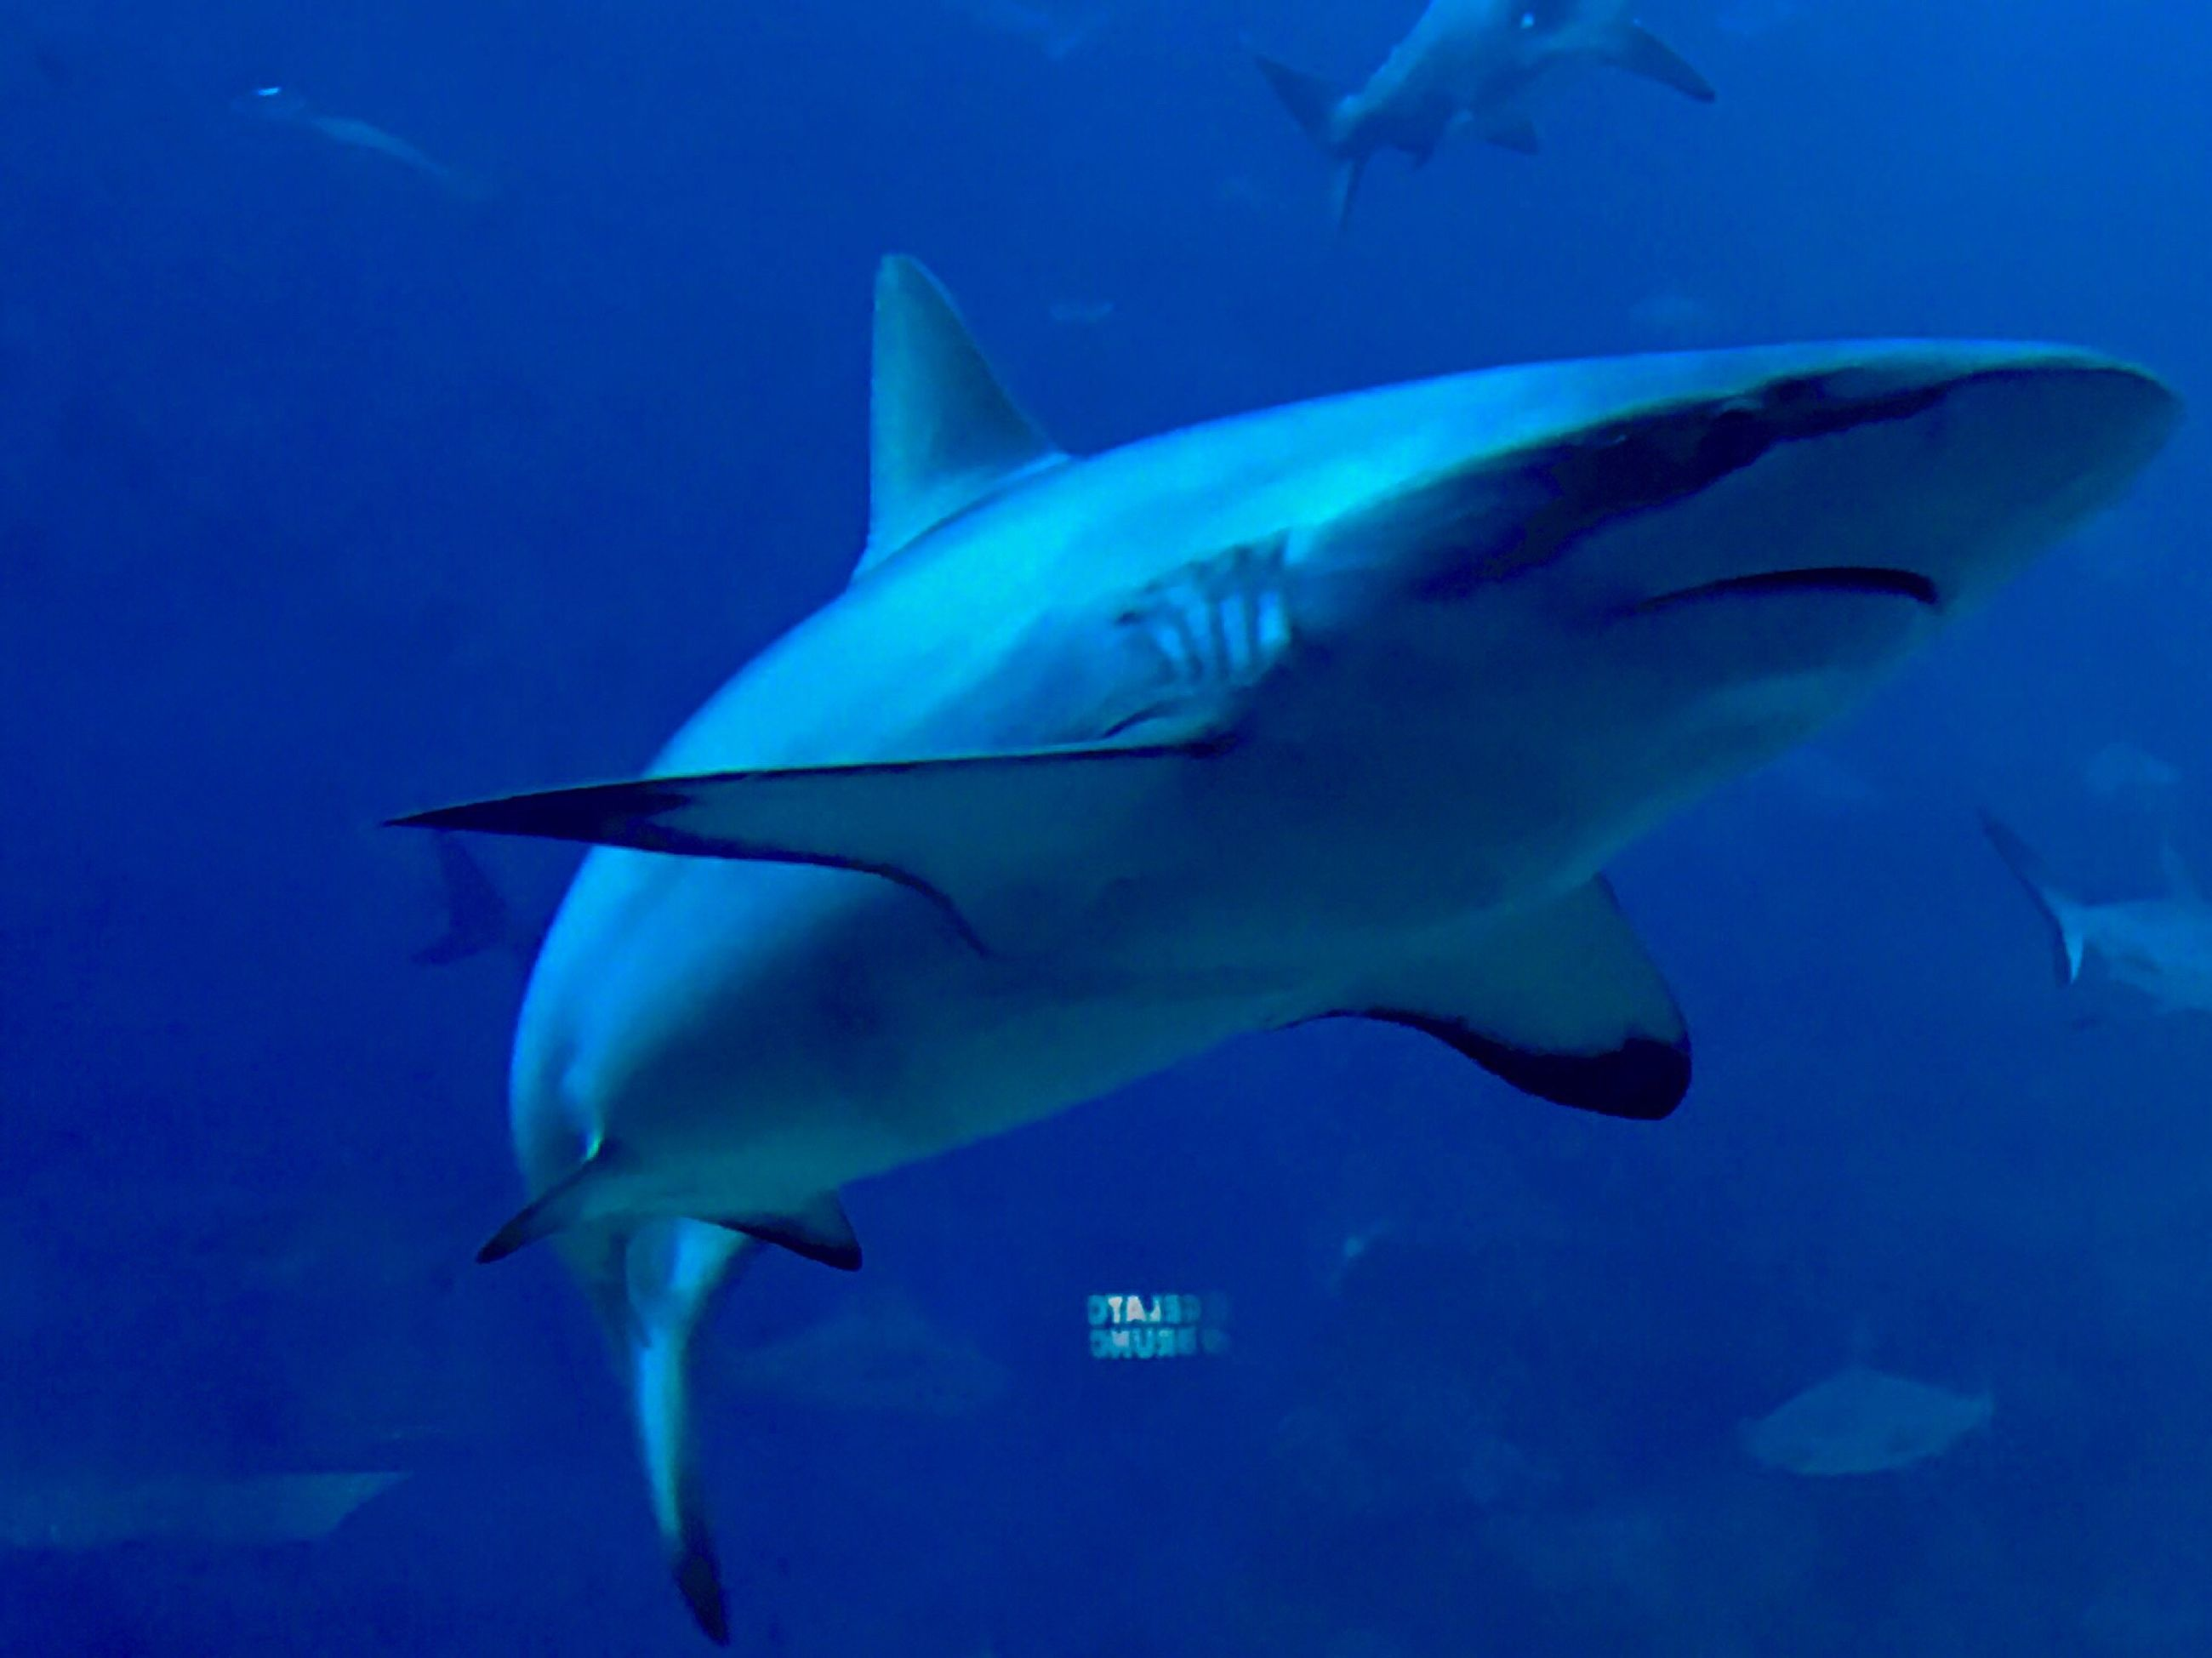 animal themes, animals in the wild, wildlife, fish, water, swimming, sea life, blue, sea, underwater, undersea, close-up, togetherness, zoology, nature, beauty in nature, no people, vibrant color